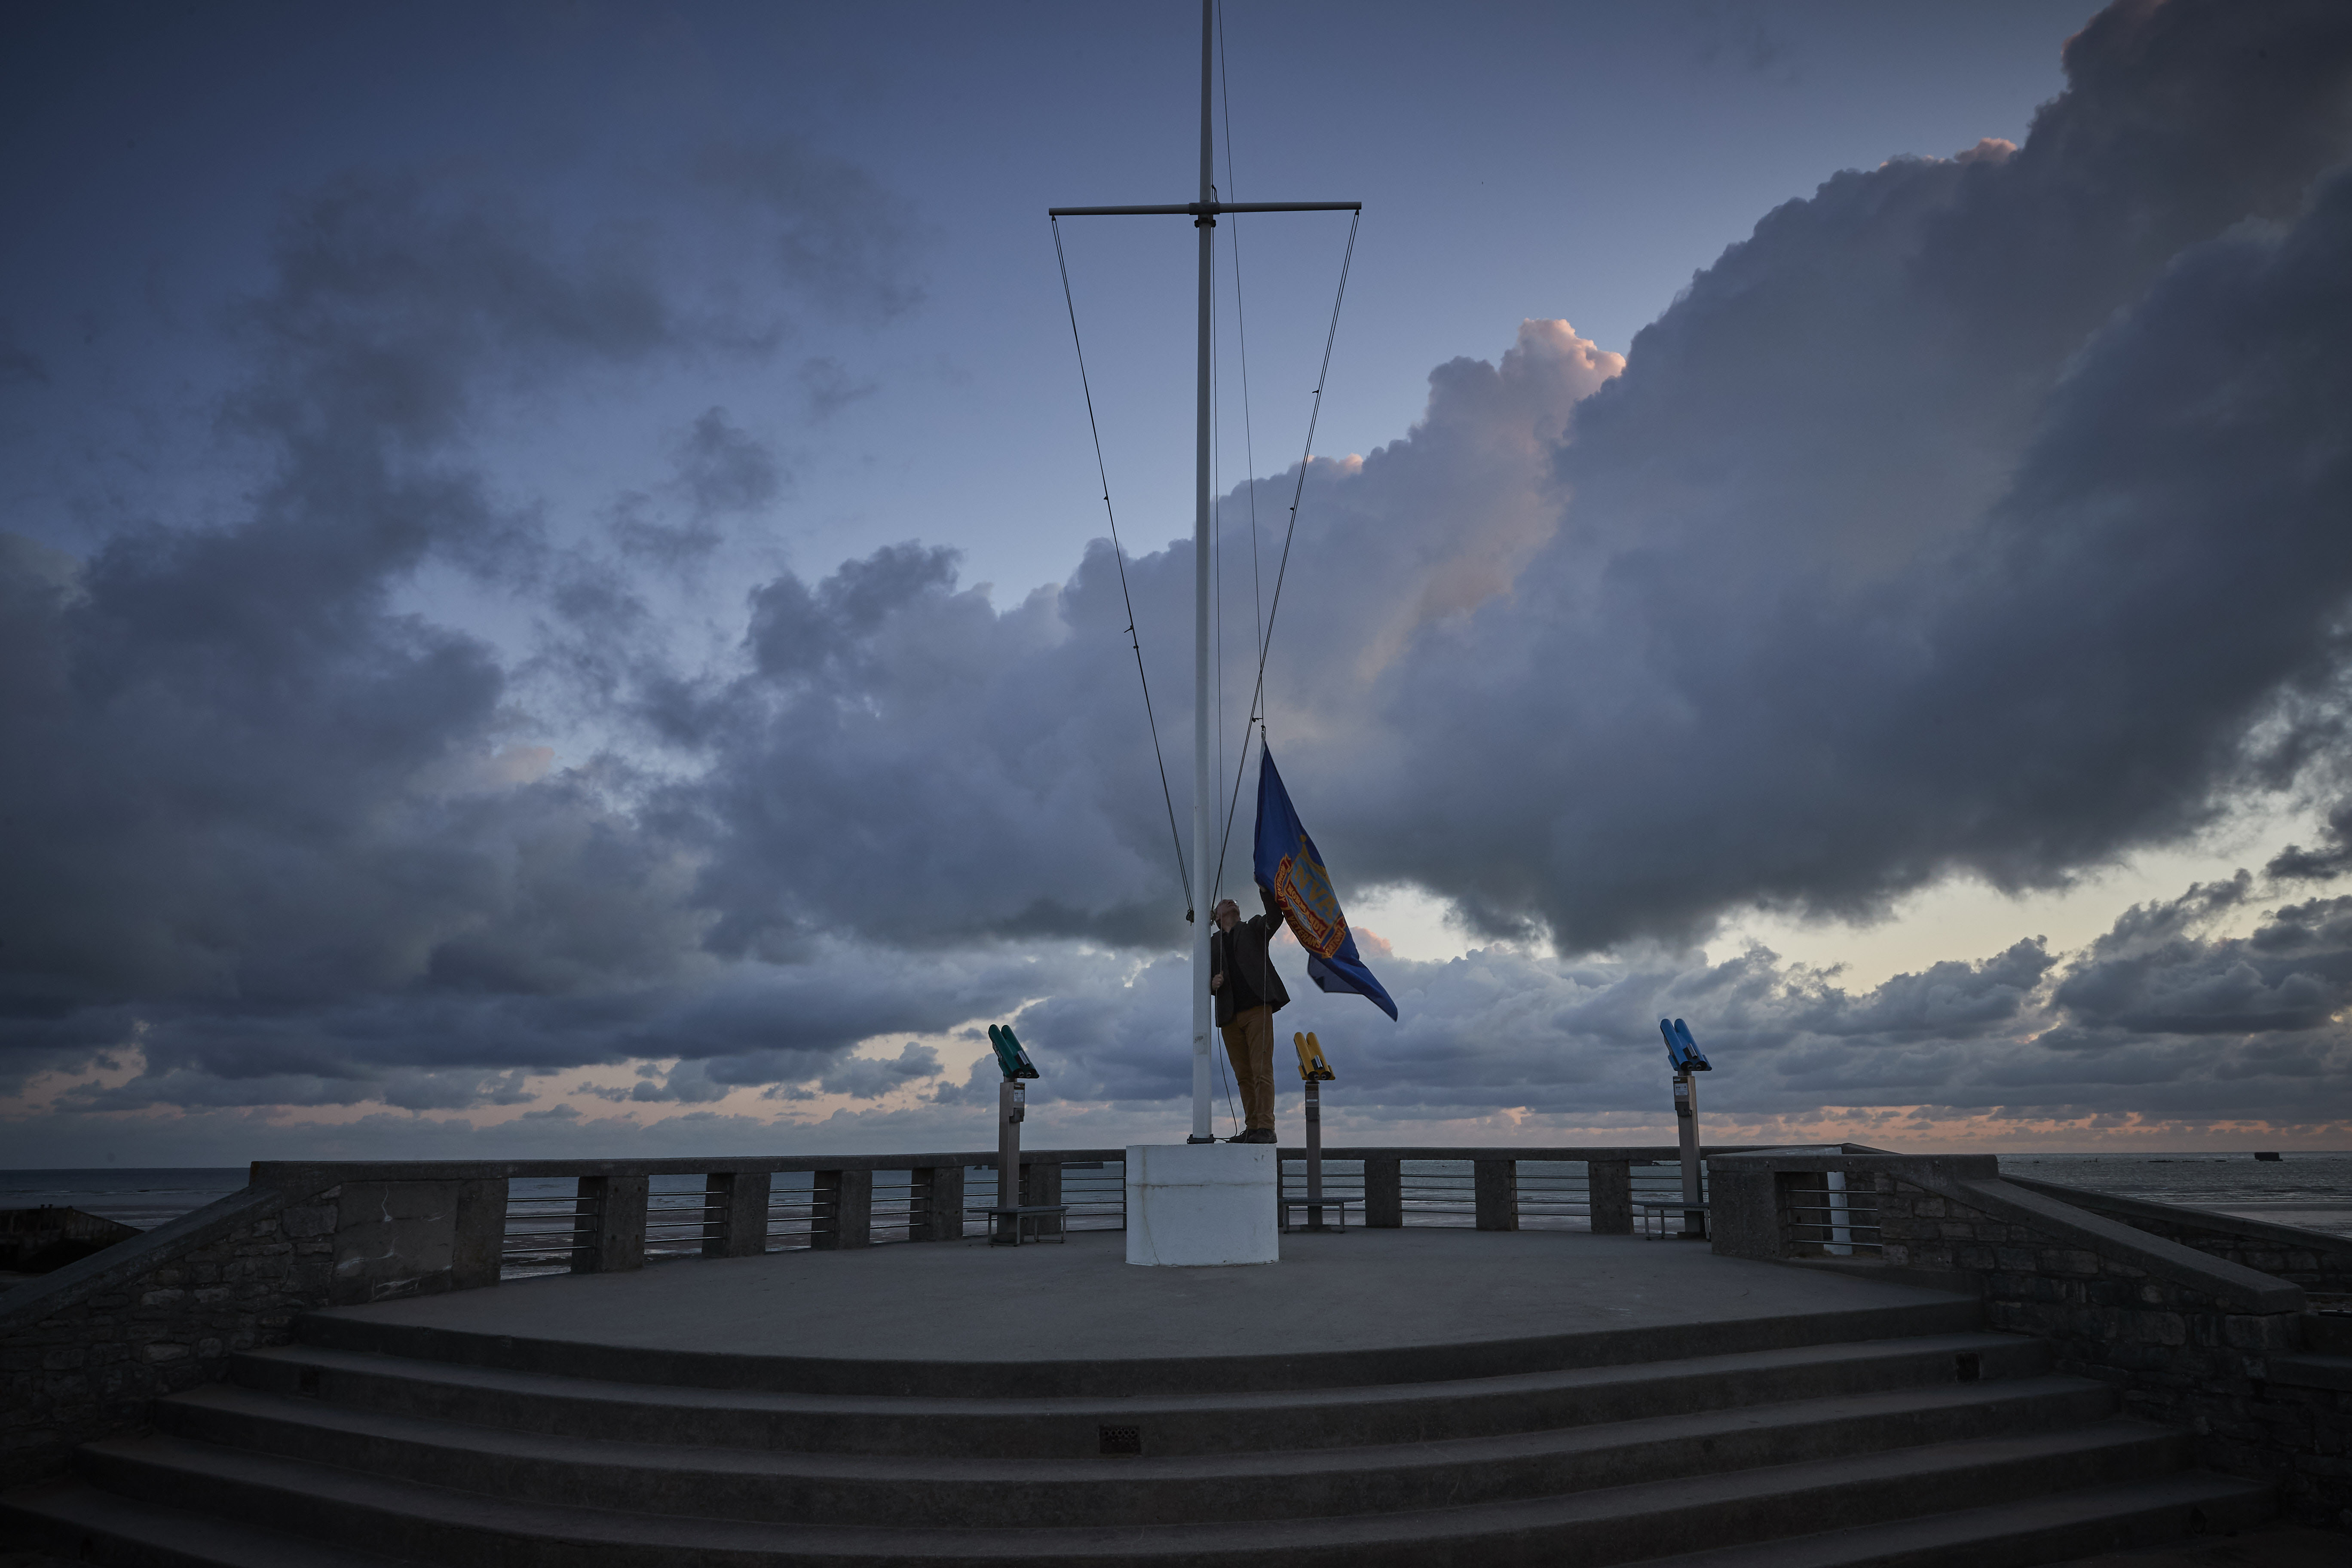 ARROMANCHES-LES-BAINS, FRANCE - JUNE 06: Adrian Cox, a British Expat and Councilor of Arromaches, raises the flag of the Normandy Veterans Association at dawn to commemorate the 76th Anniversary of the D-Day landings at dawn on Gold Beach on June 06, 2020 in Arromanches-les-Bains, France. Due to Covid-19 travel restrictions this is the first time in 75 years that veterans have not been able to attend the Anniversary.  (Photo by Kiran Ridley/Getty Images)